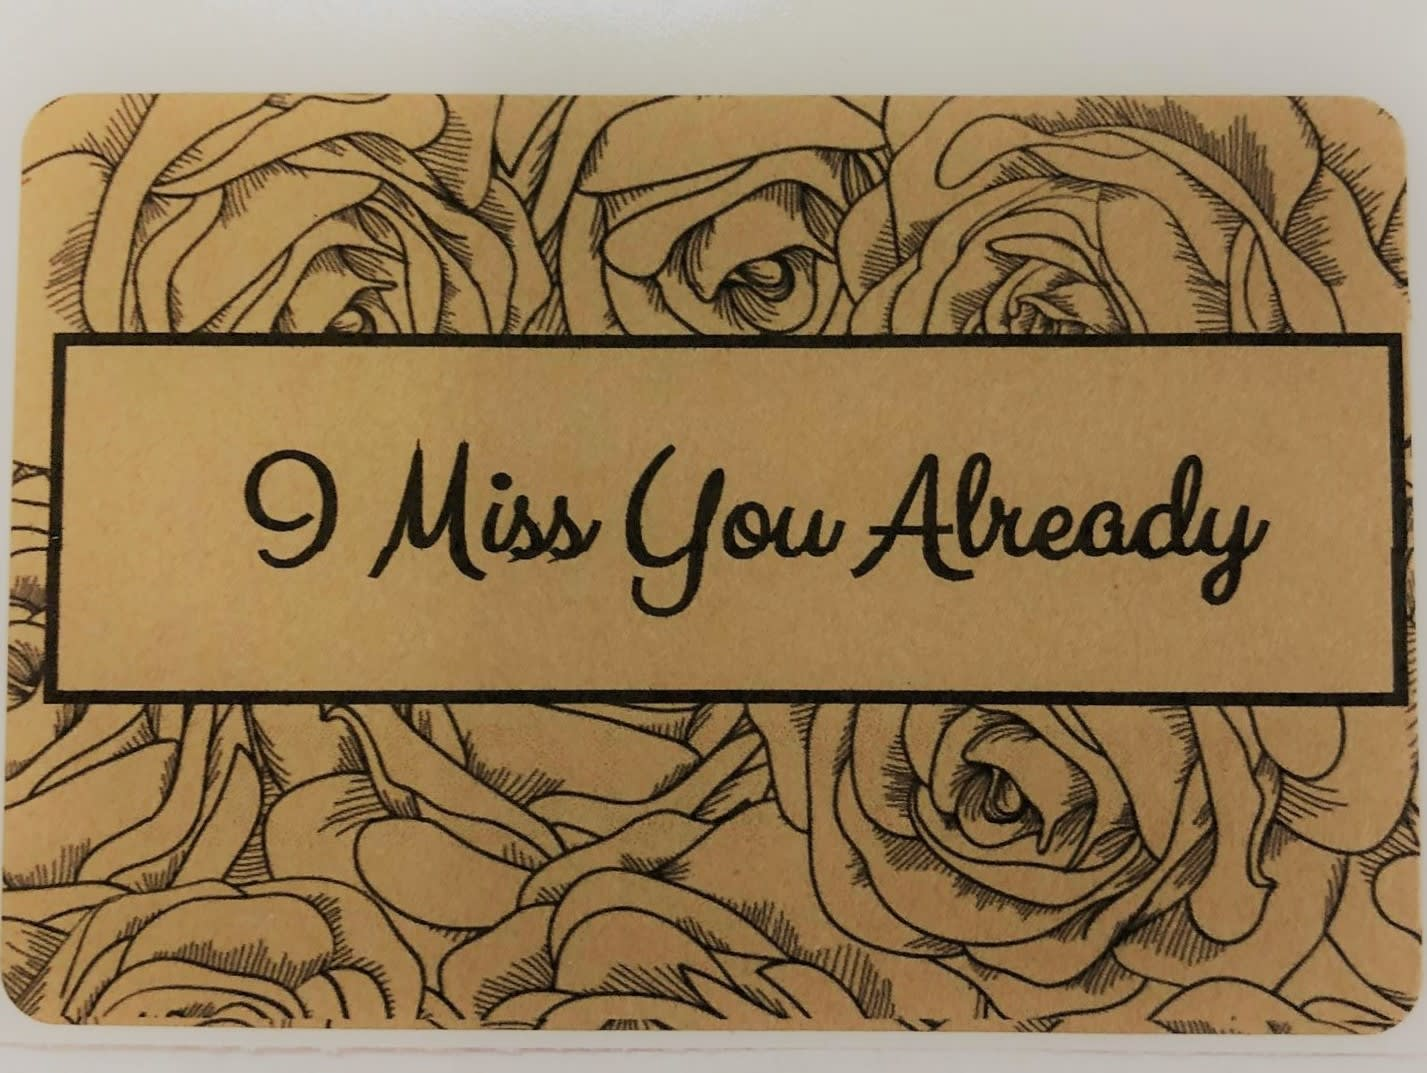 I Miss You Already Add On For Message Candle Label In Tell City In